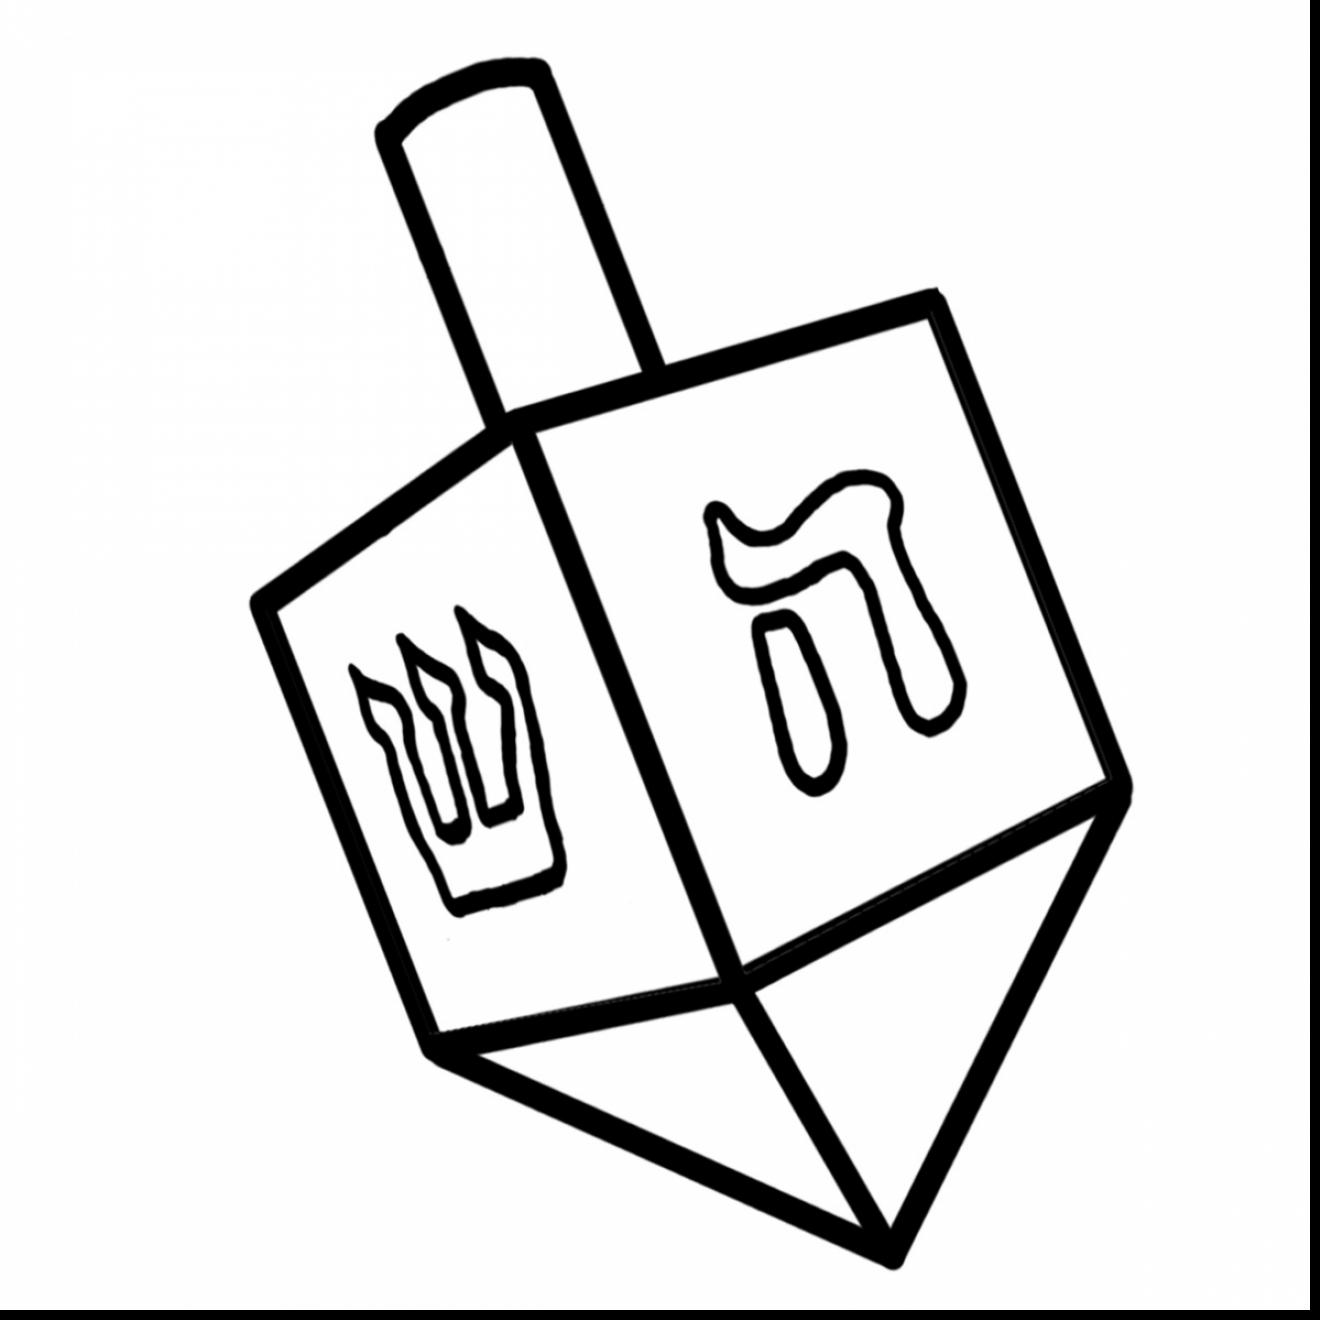 1320x1320 Hanukkah Dreidel Coloring Pages To Print Free Printable Kids